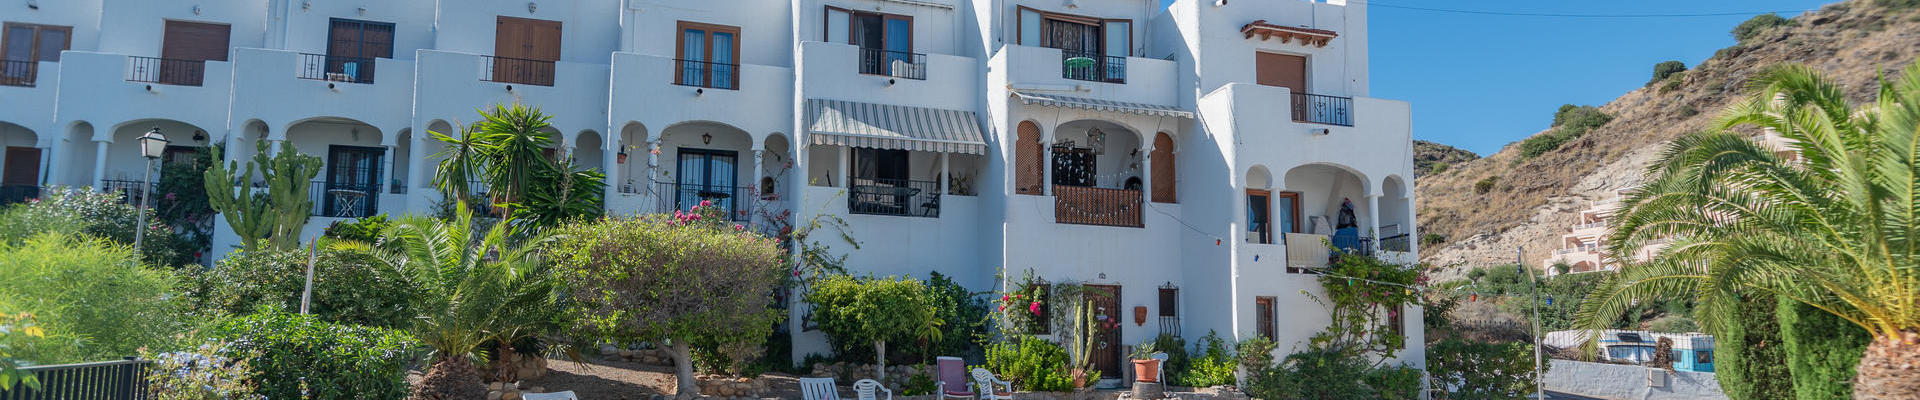 LV780: 2 Bedroom Townhouse for Sale